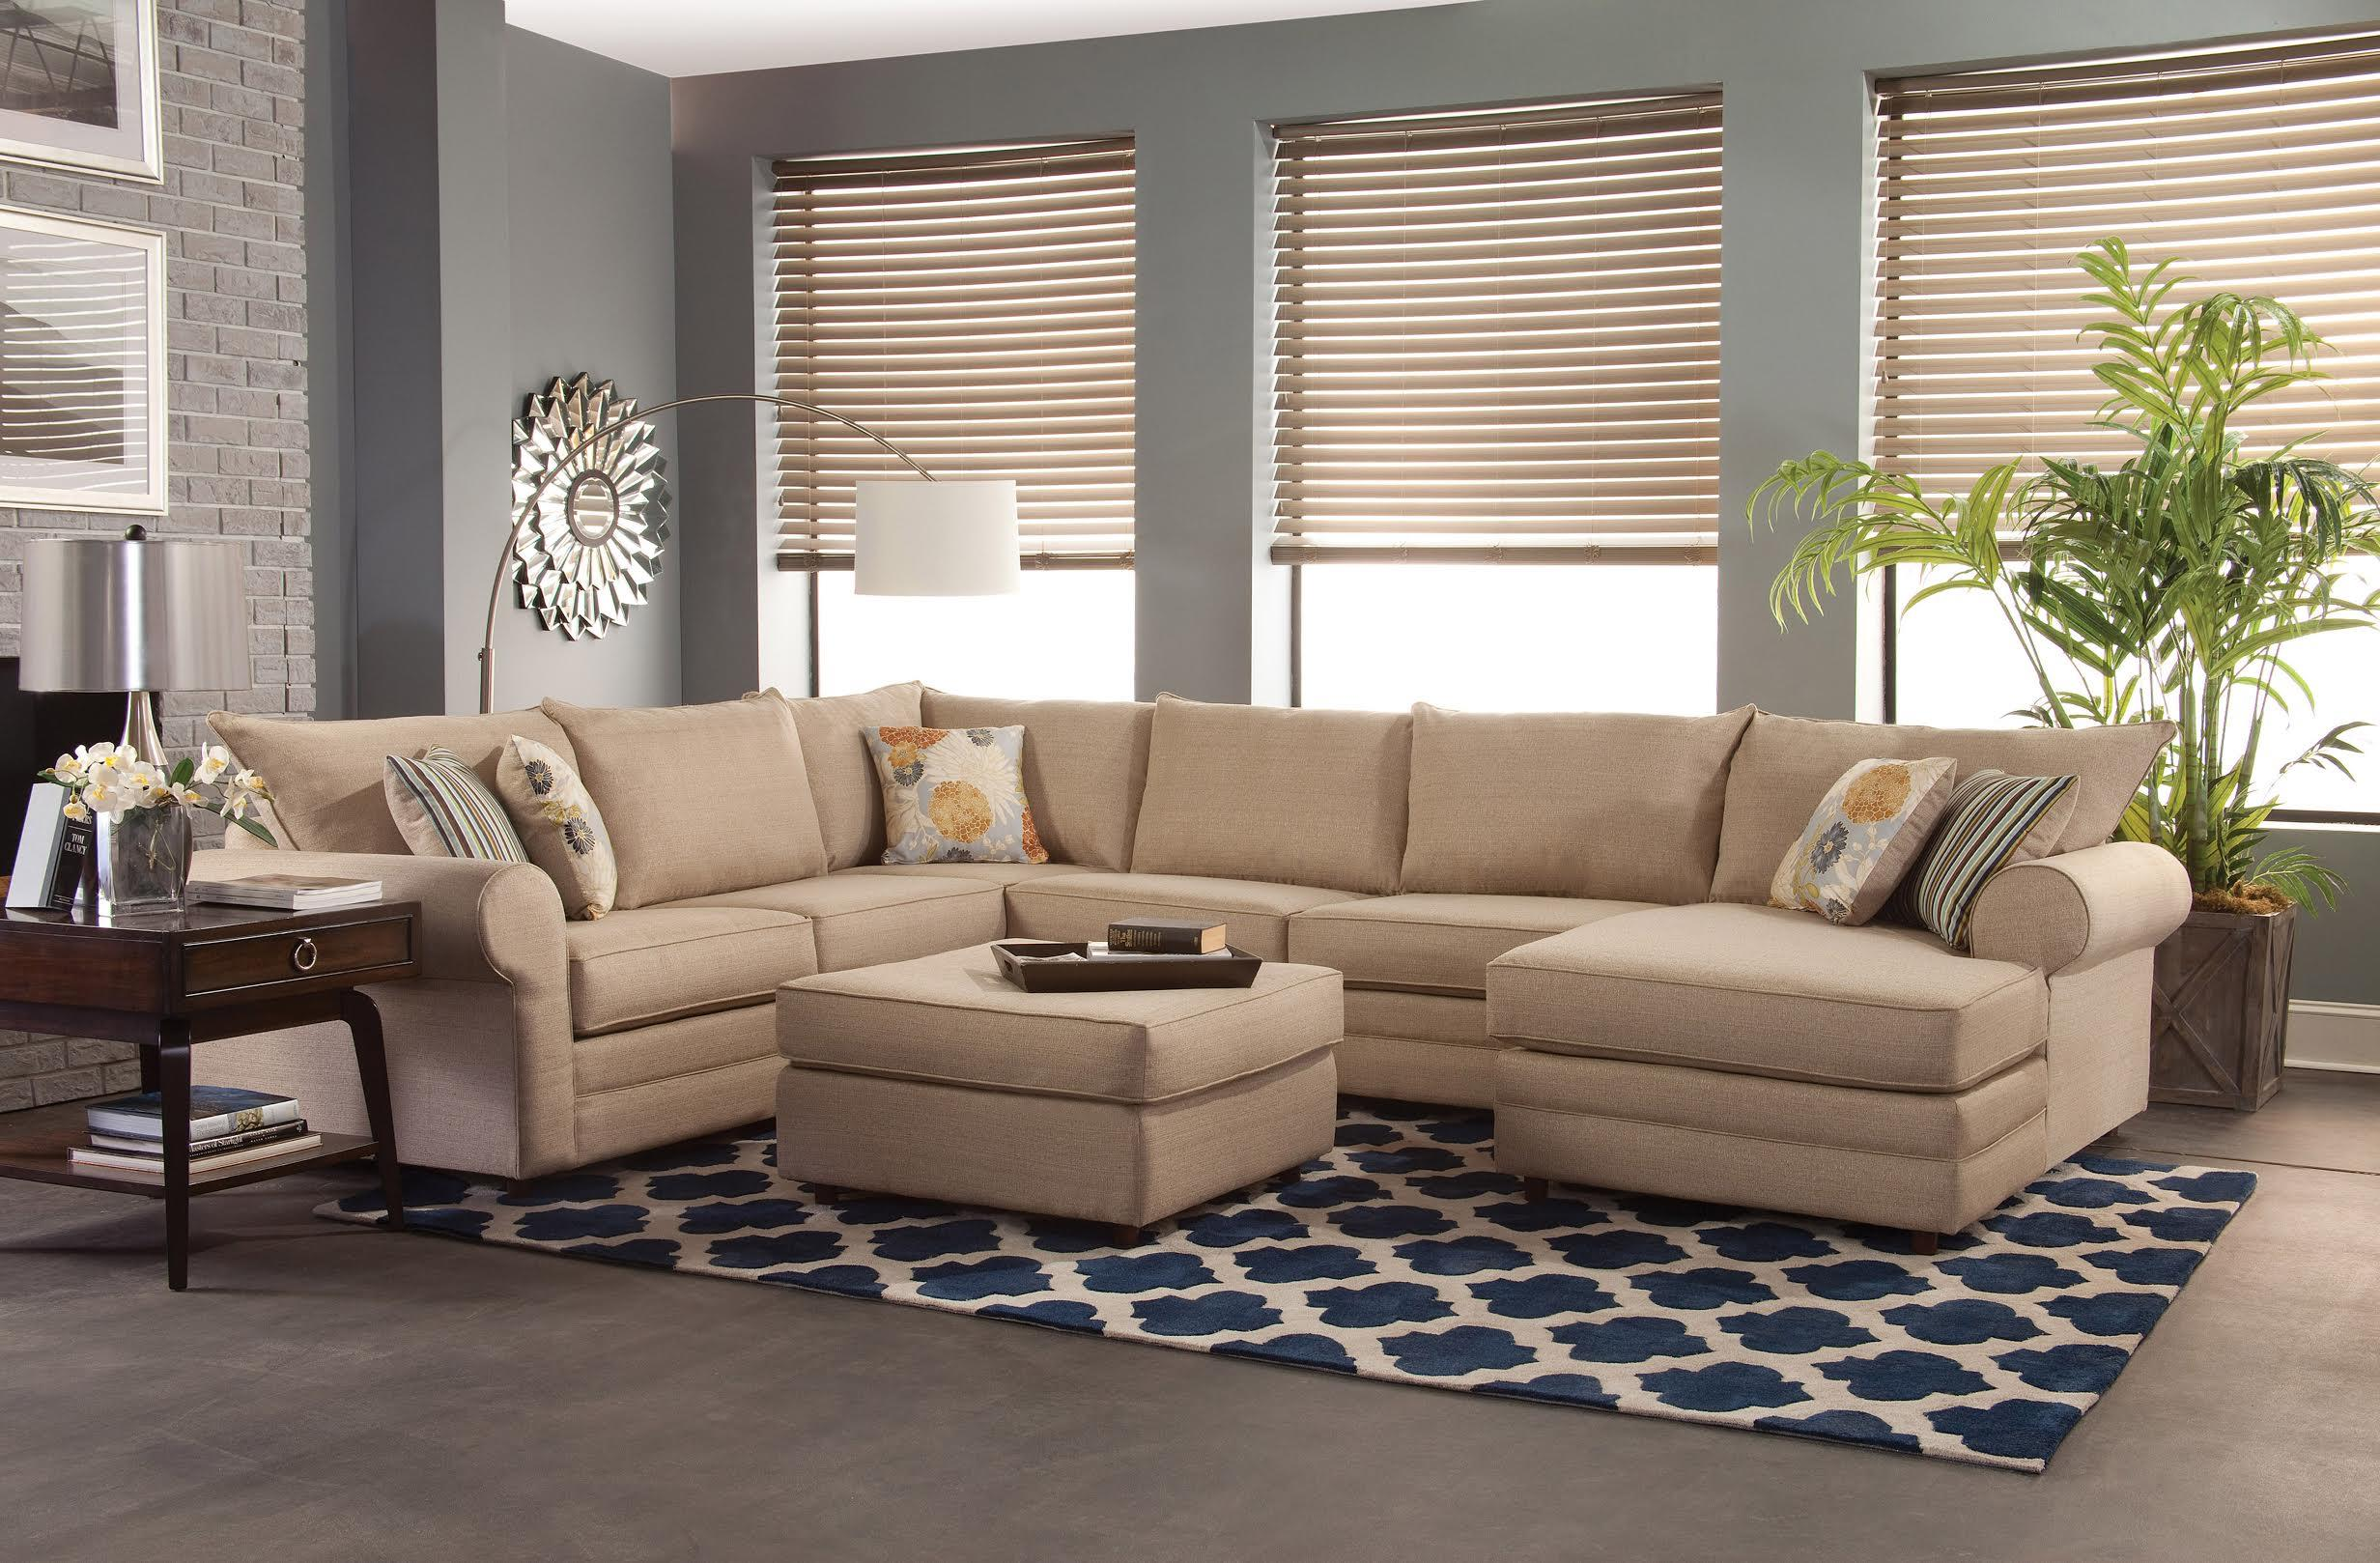 Monticello Casual Sectional Sofa by VFM Essentials at Virginia Furniture Market